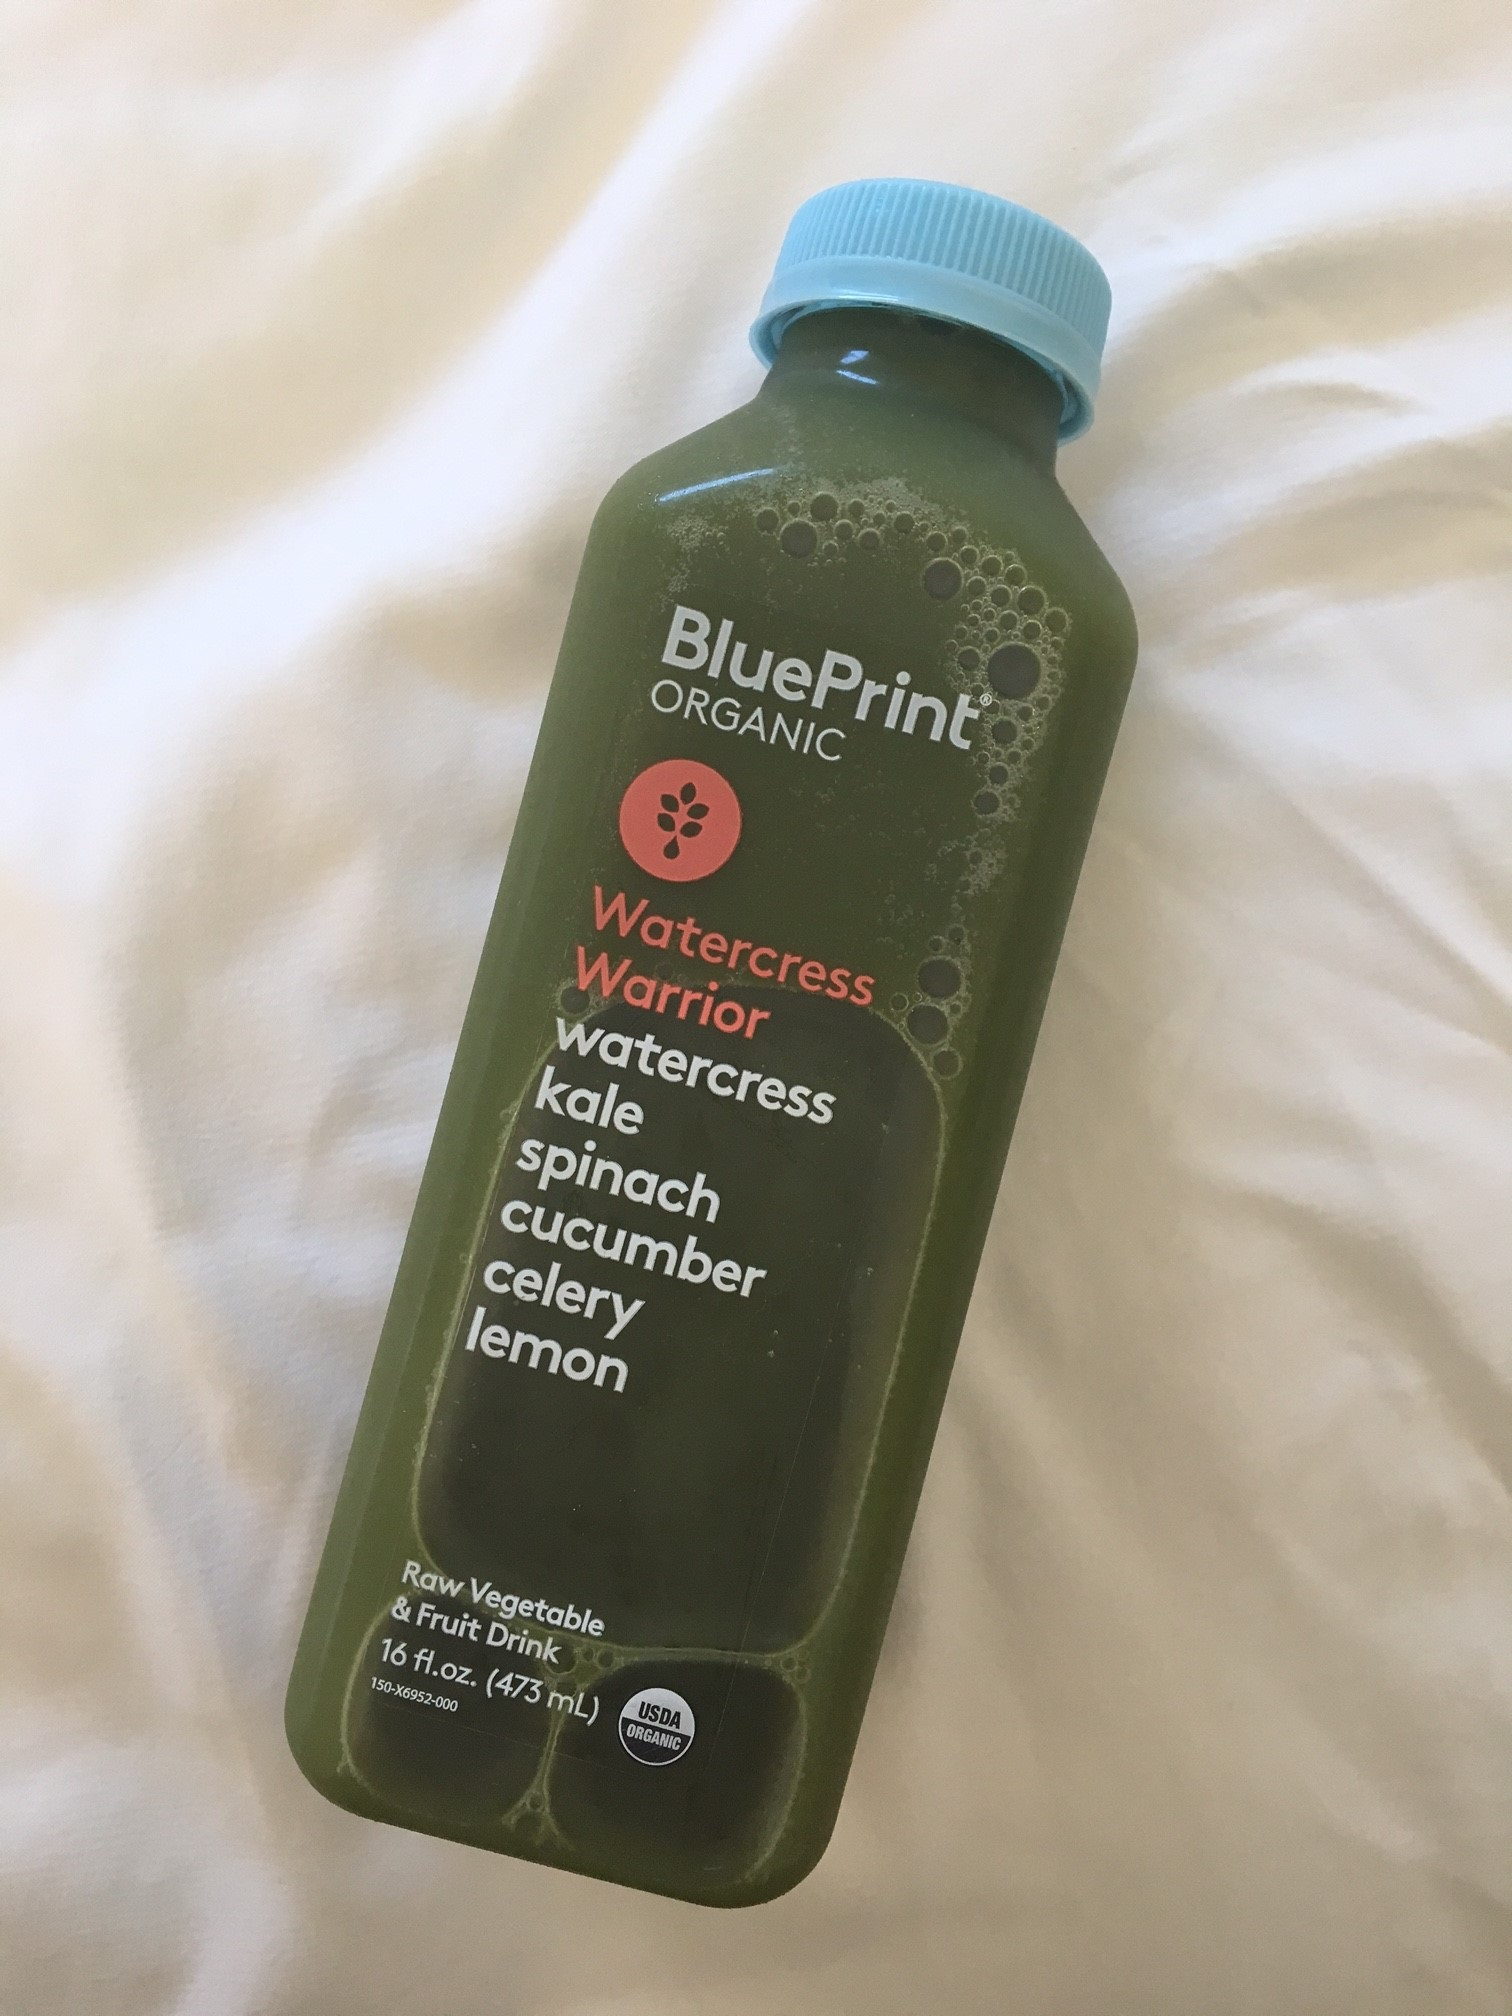 Blueprint juices whole foods market hain celestial 39 s acquires trending malvernweather Choice Image